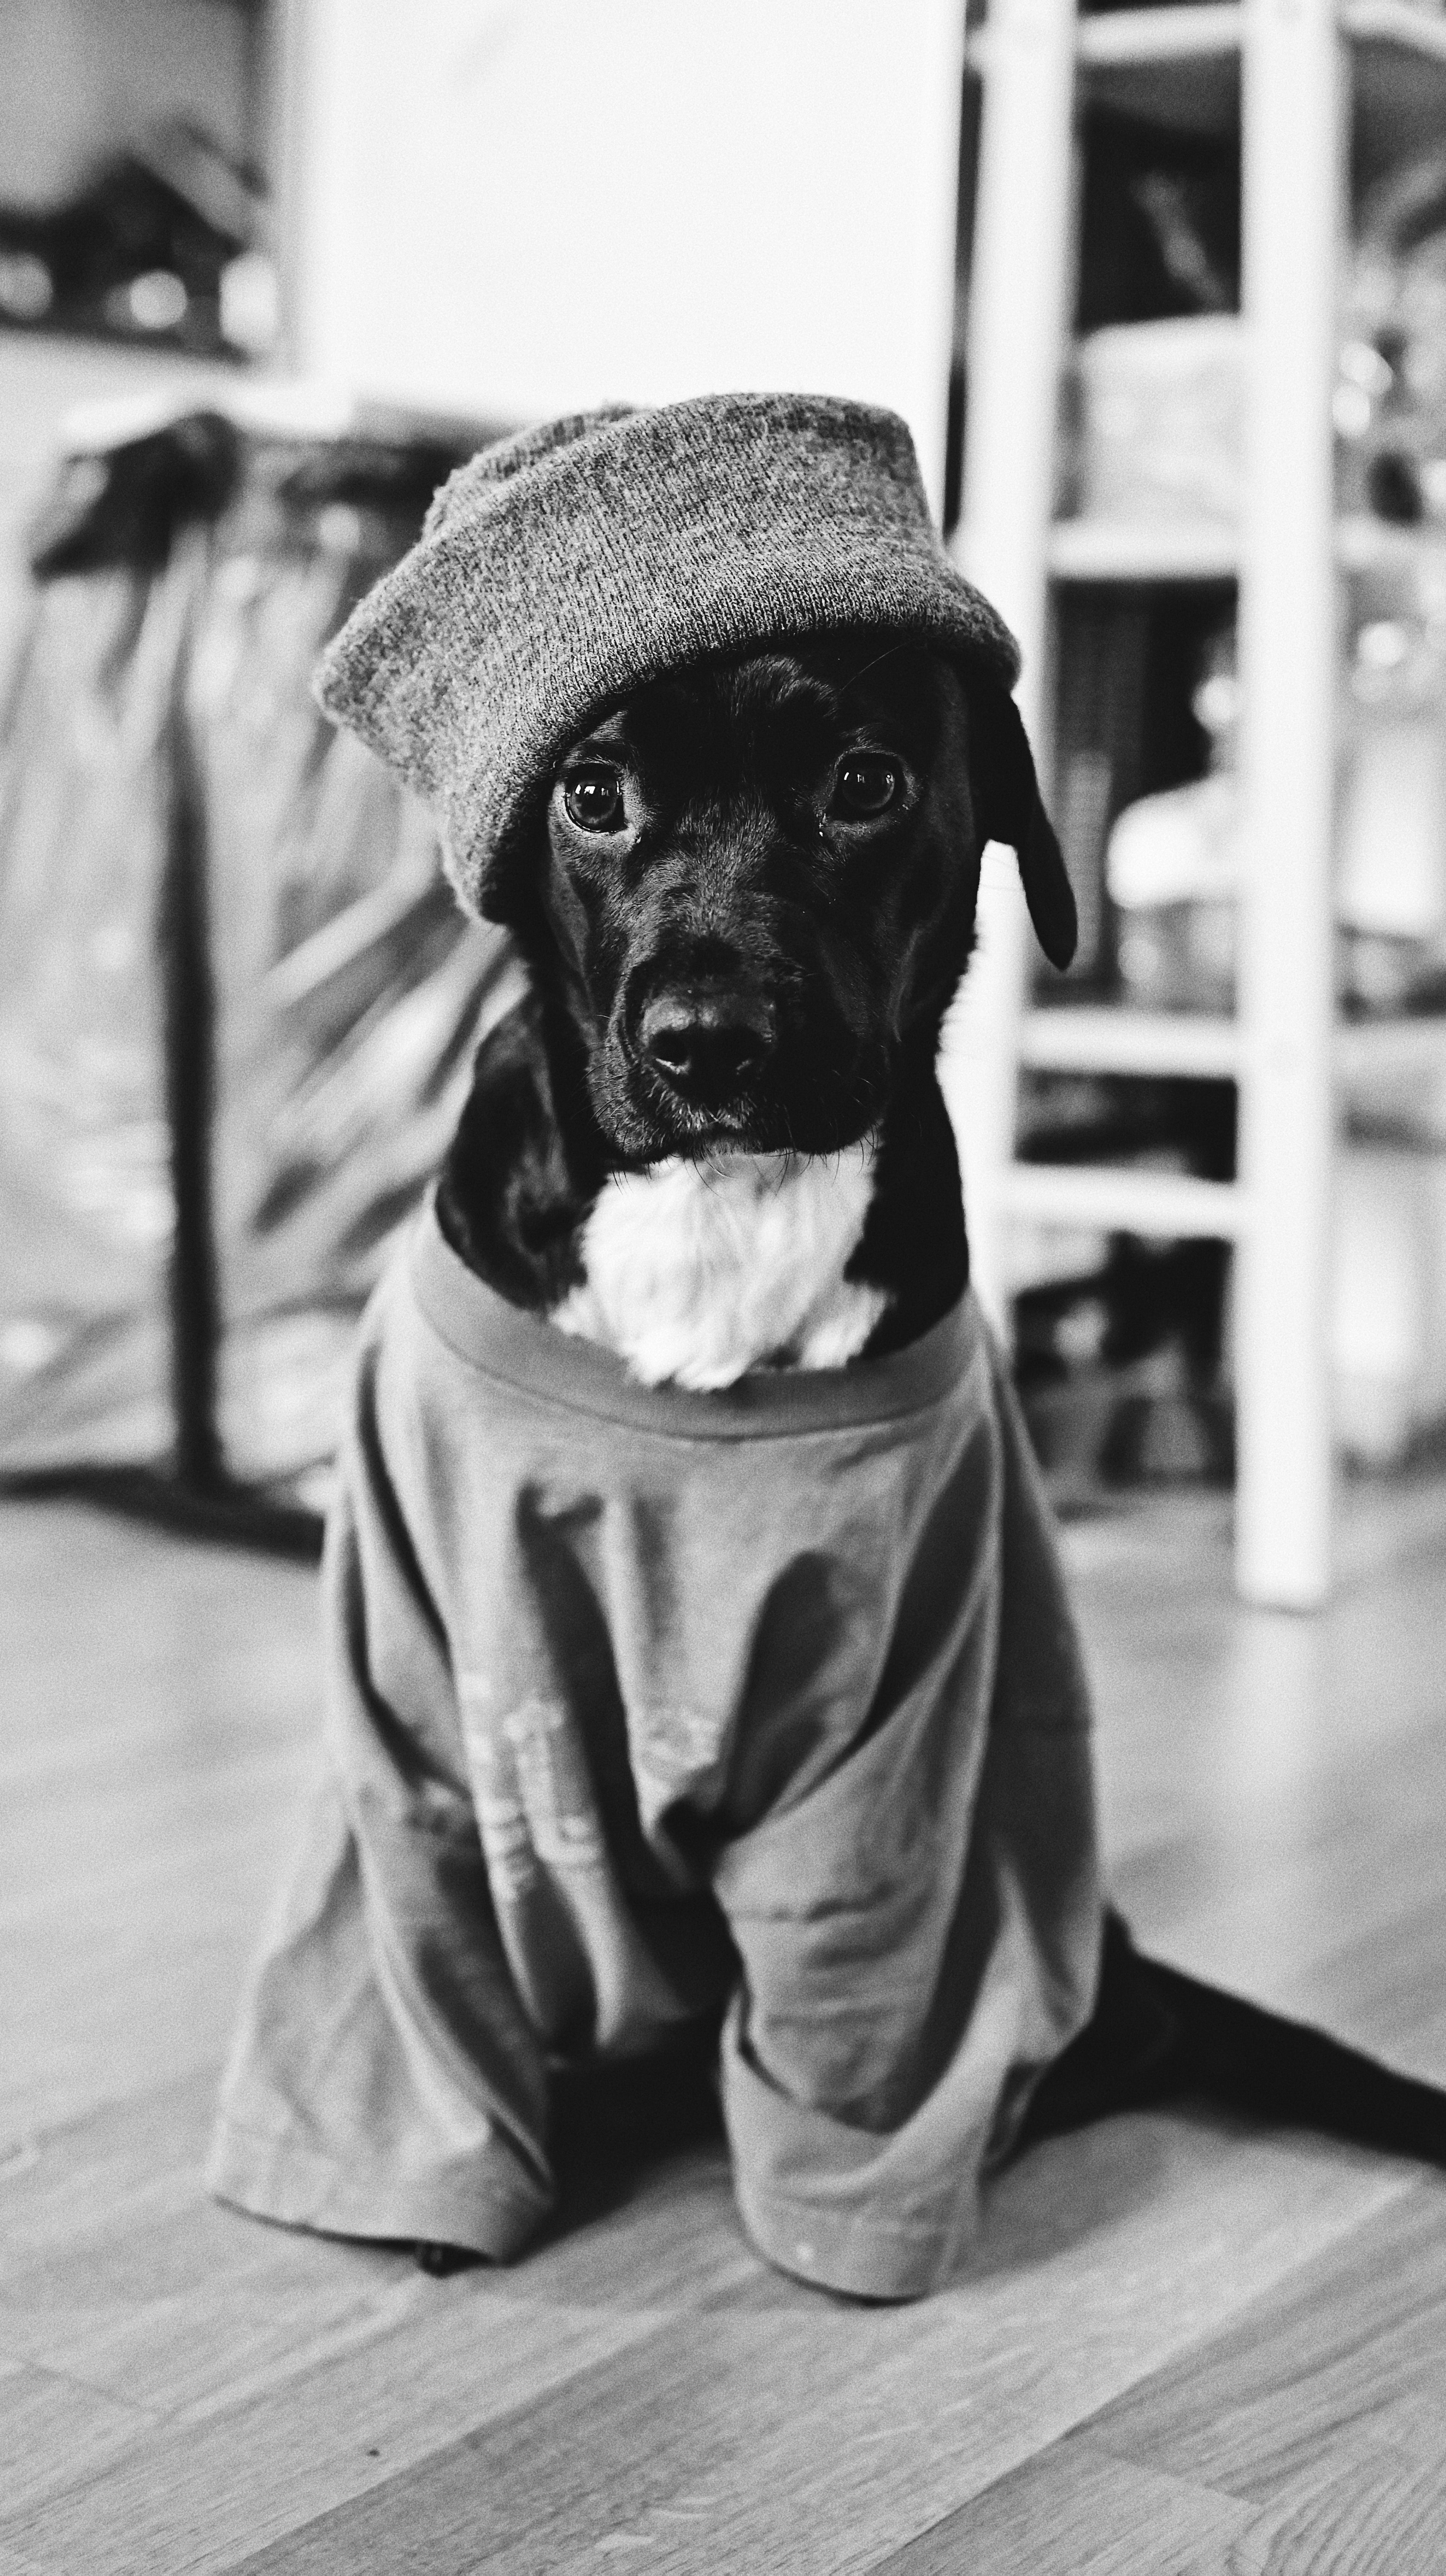 141791 Screensavers and Wallpapers Pet for phone. Download Animals, Dog, Clothing, Bw, Chb, Pet pictures for free